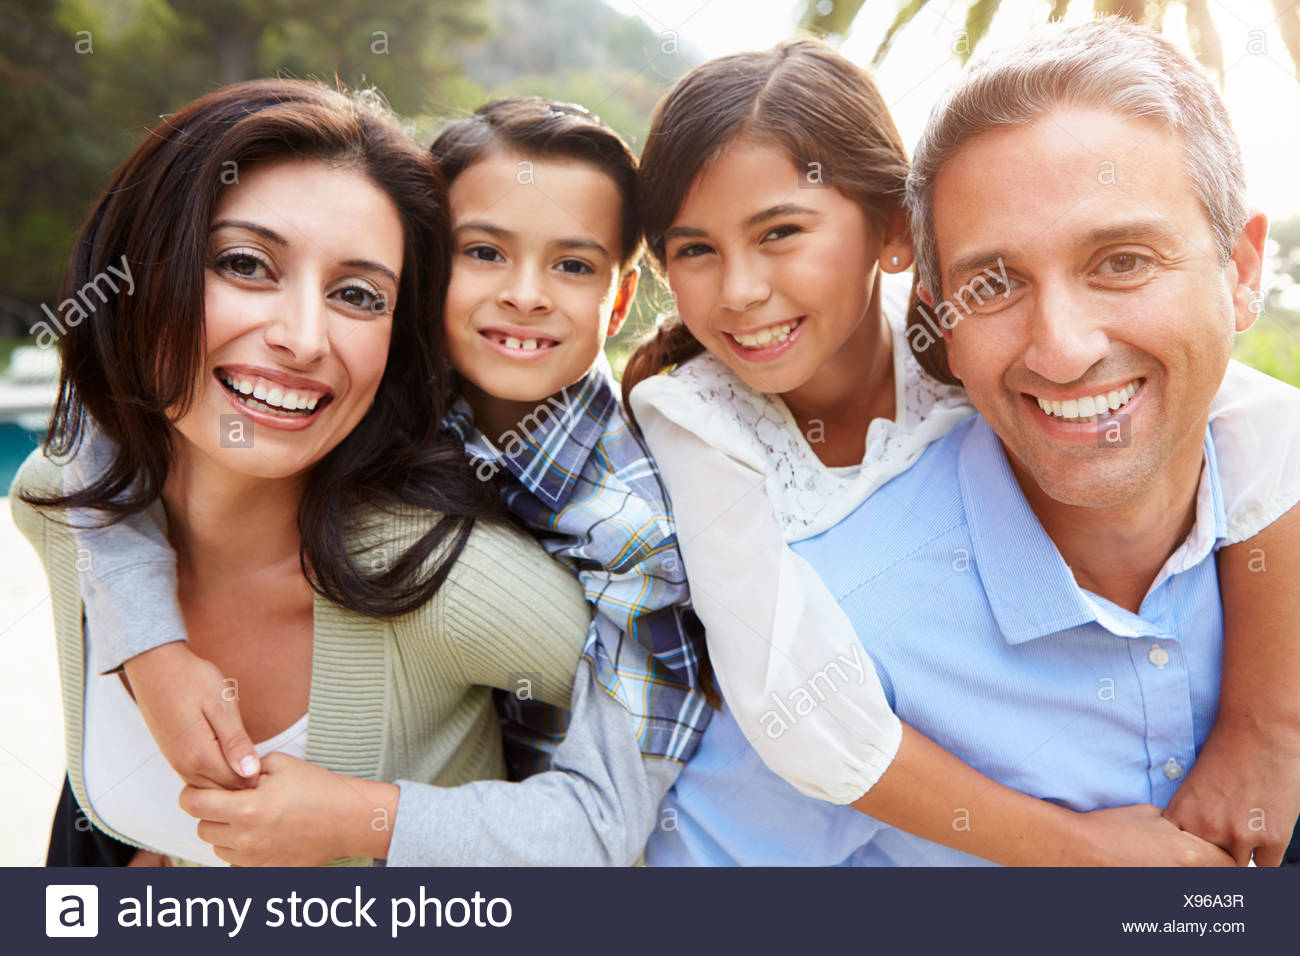 Portrait Of Hispanic Family In Countryside - Stock Image